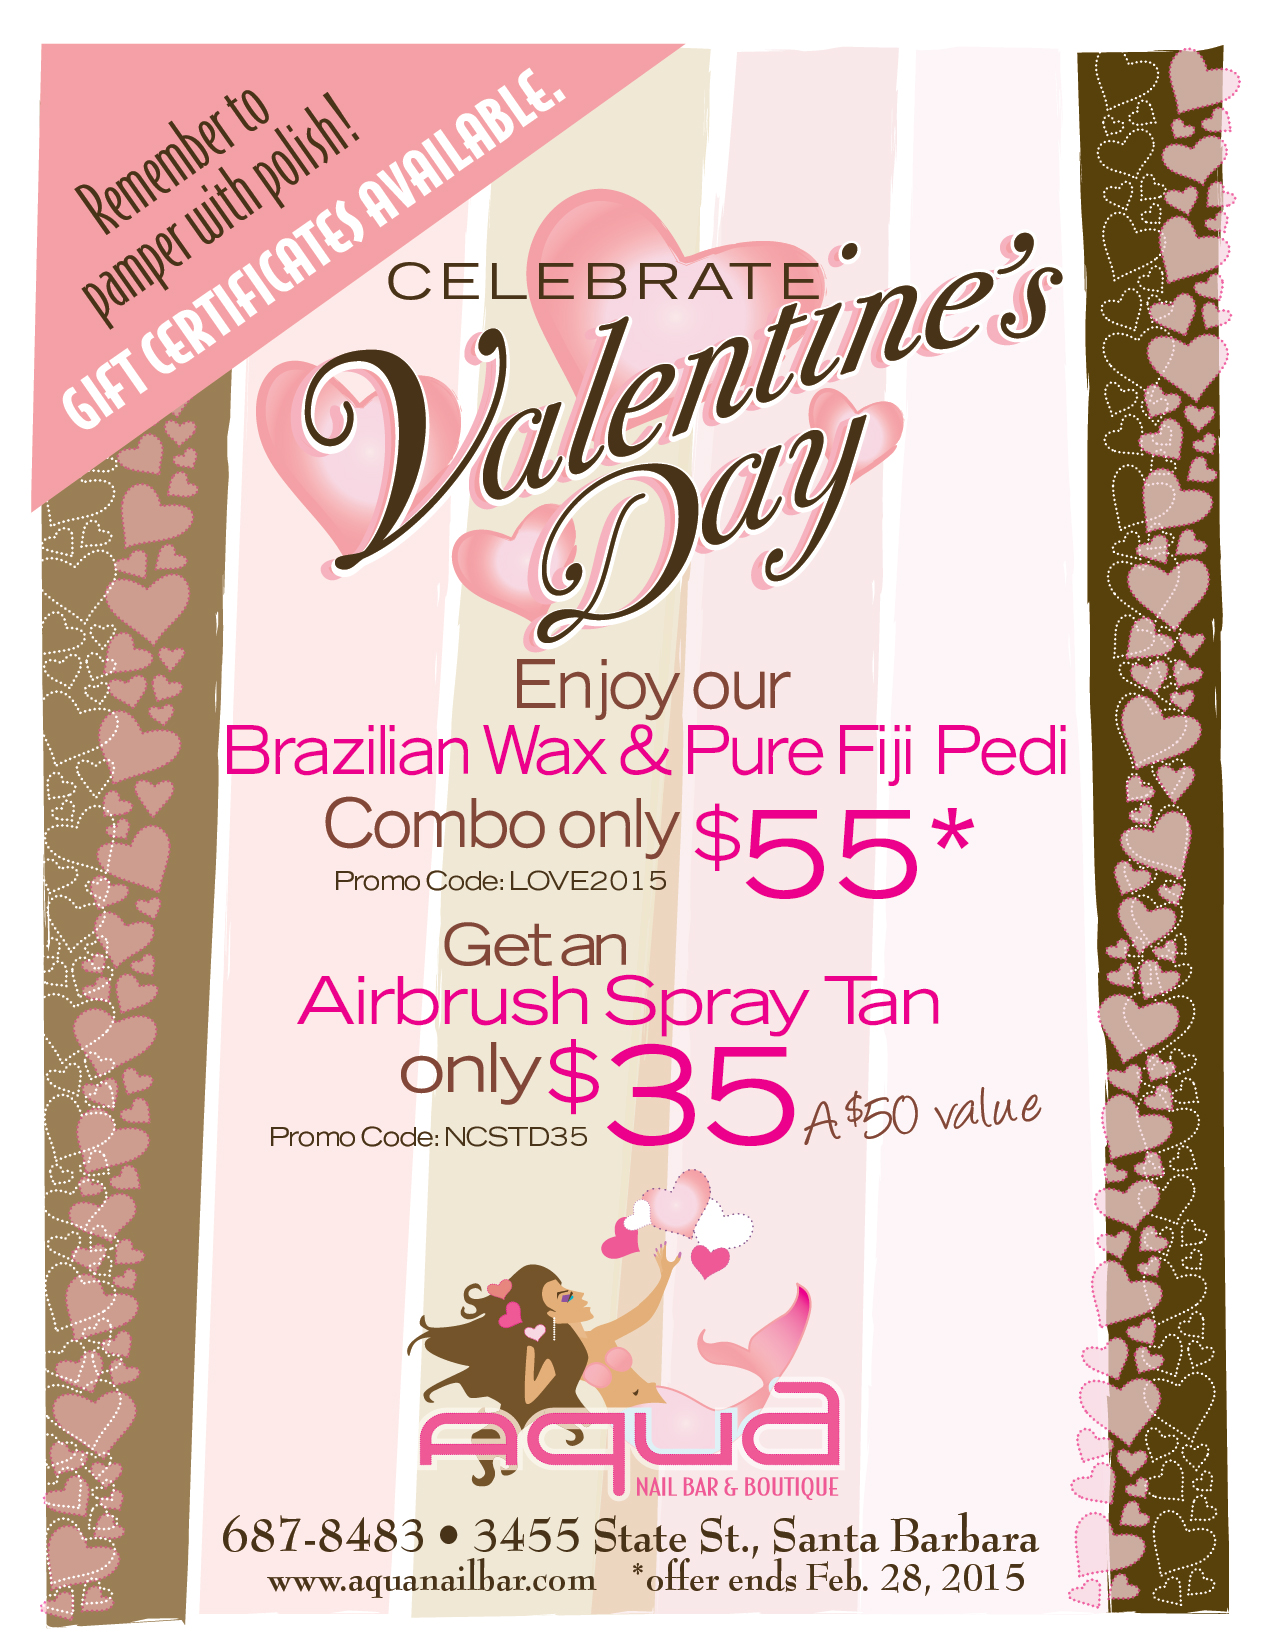 Aqua nail bar Valentine's Day flyer